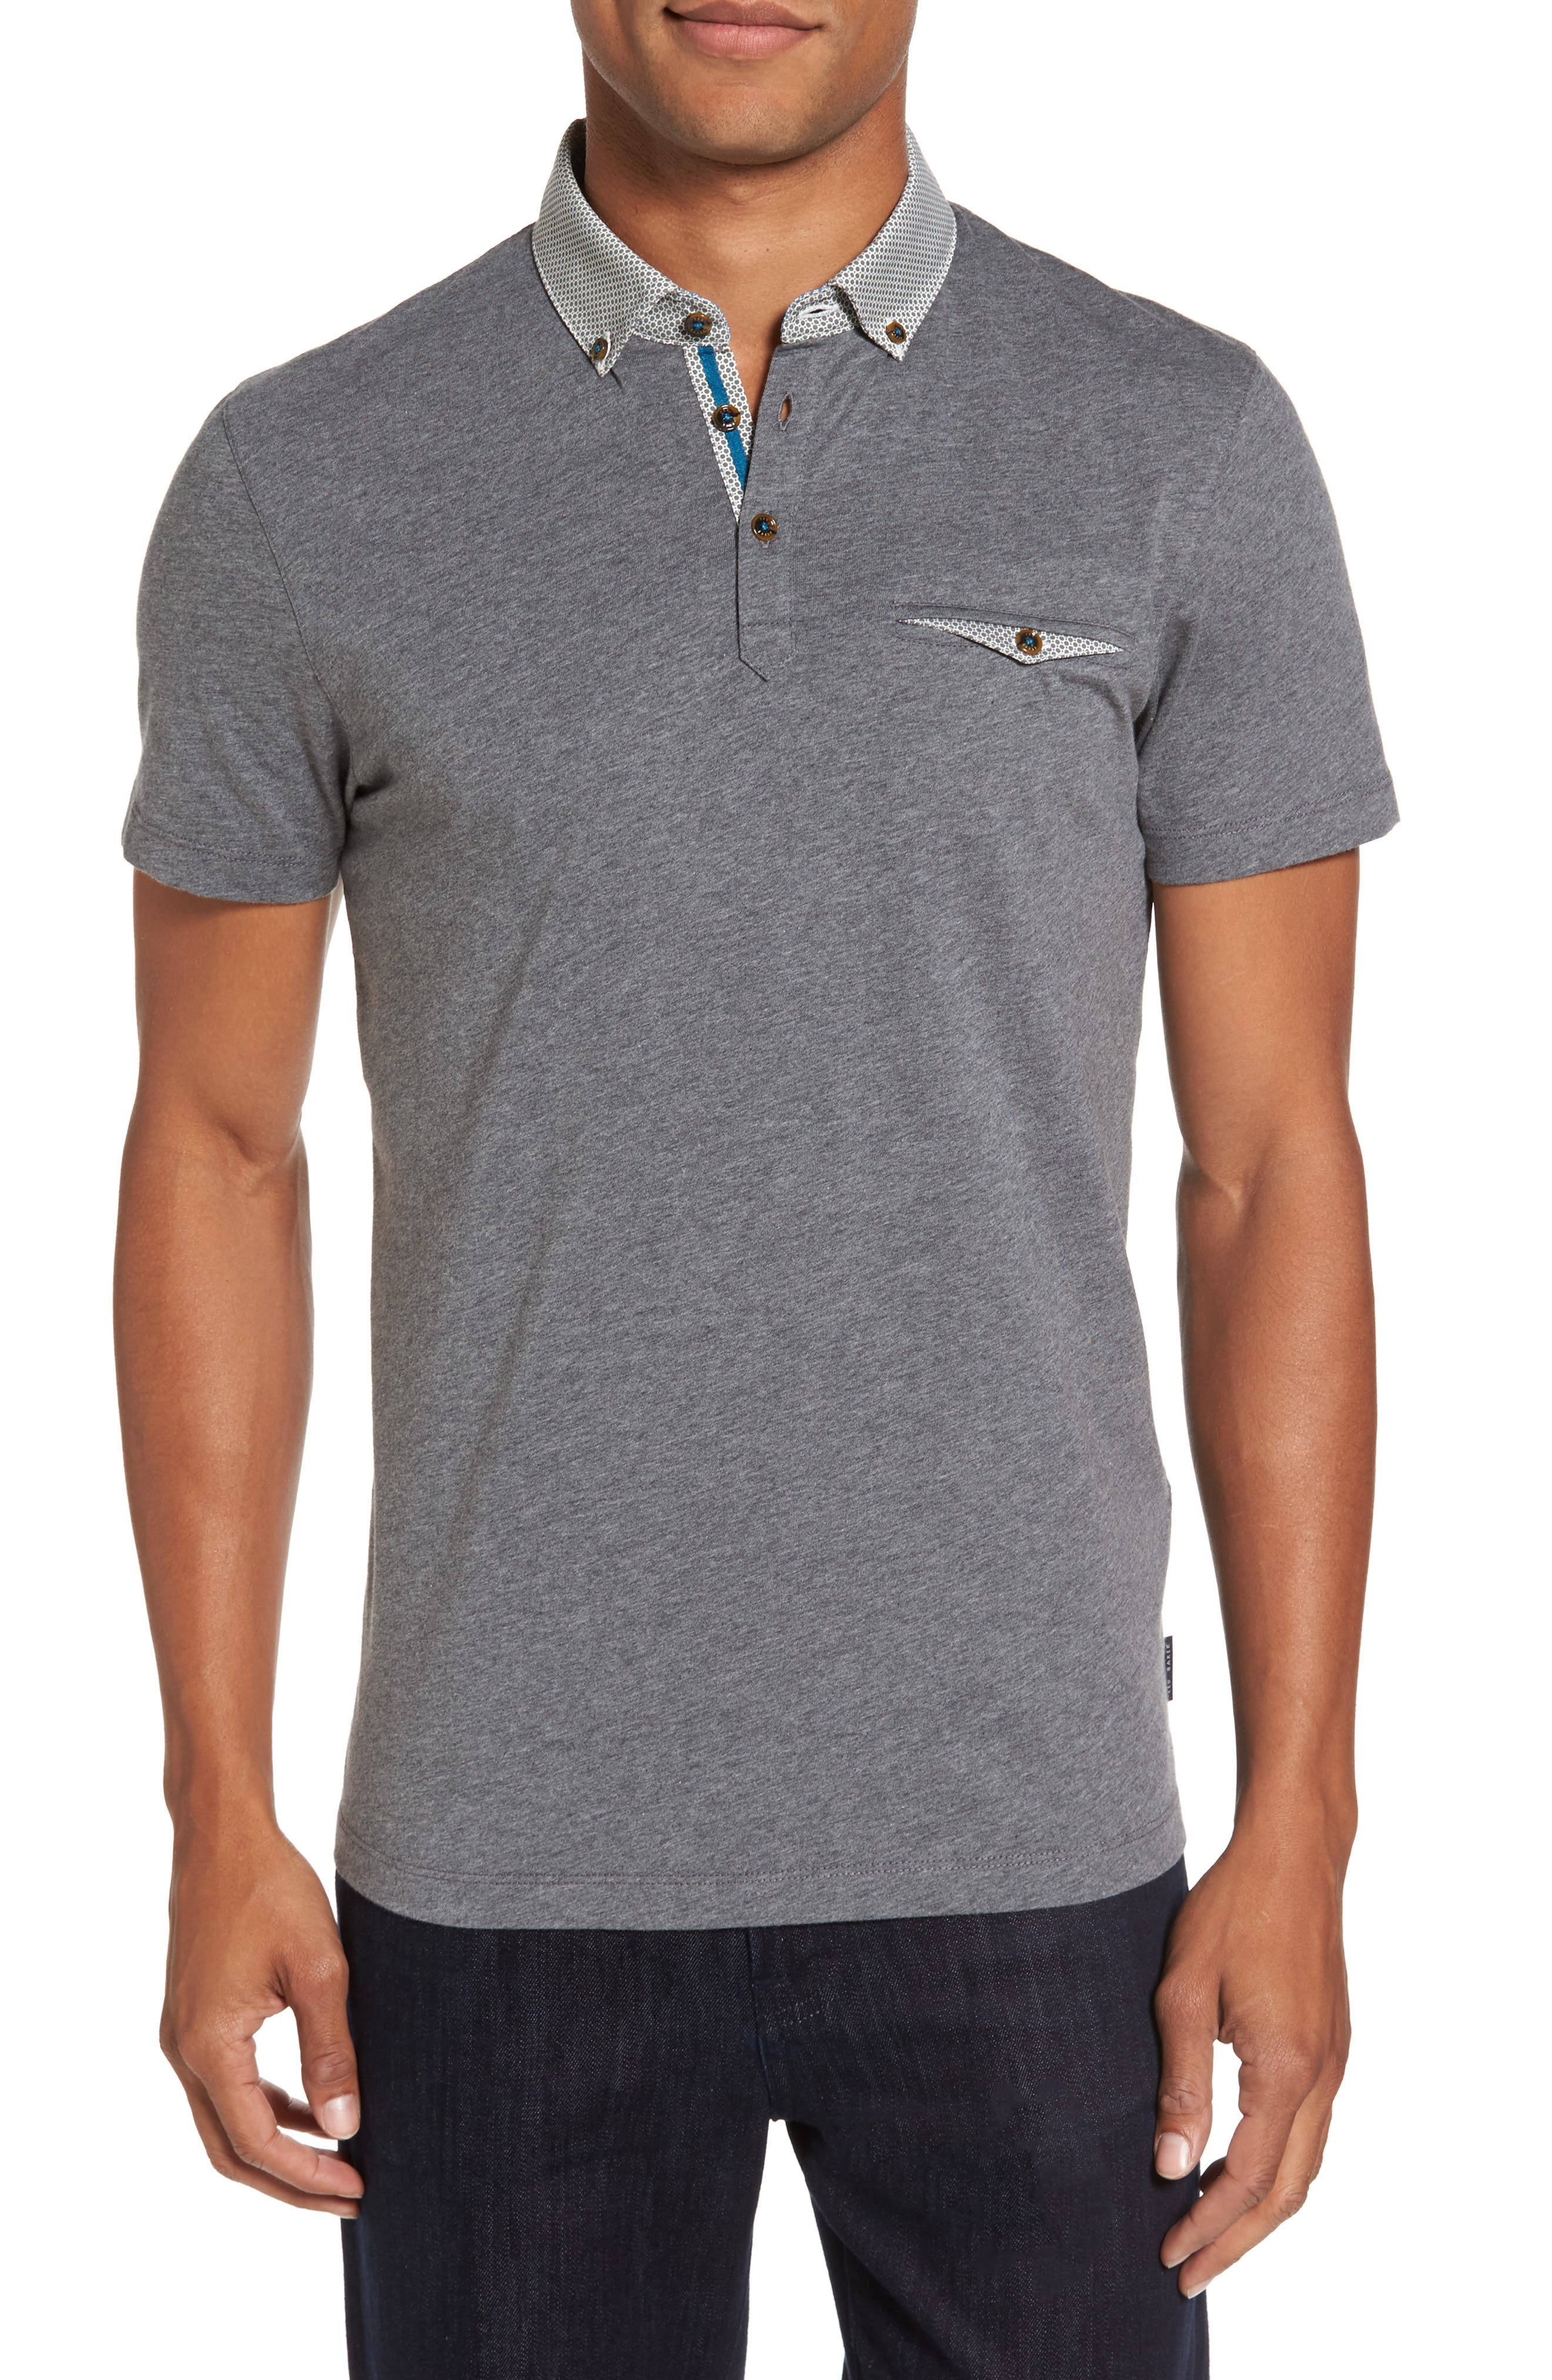 Alternate Image 1 Selected - Ted Baker London Woven Collar Polo